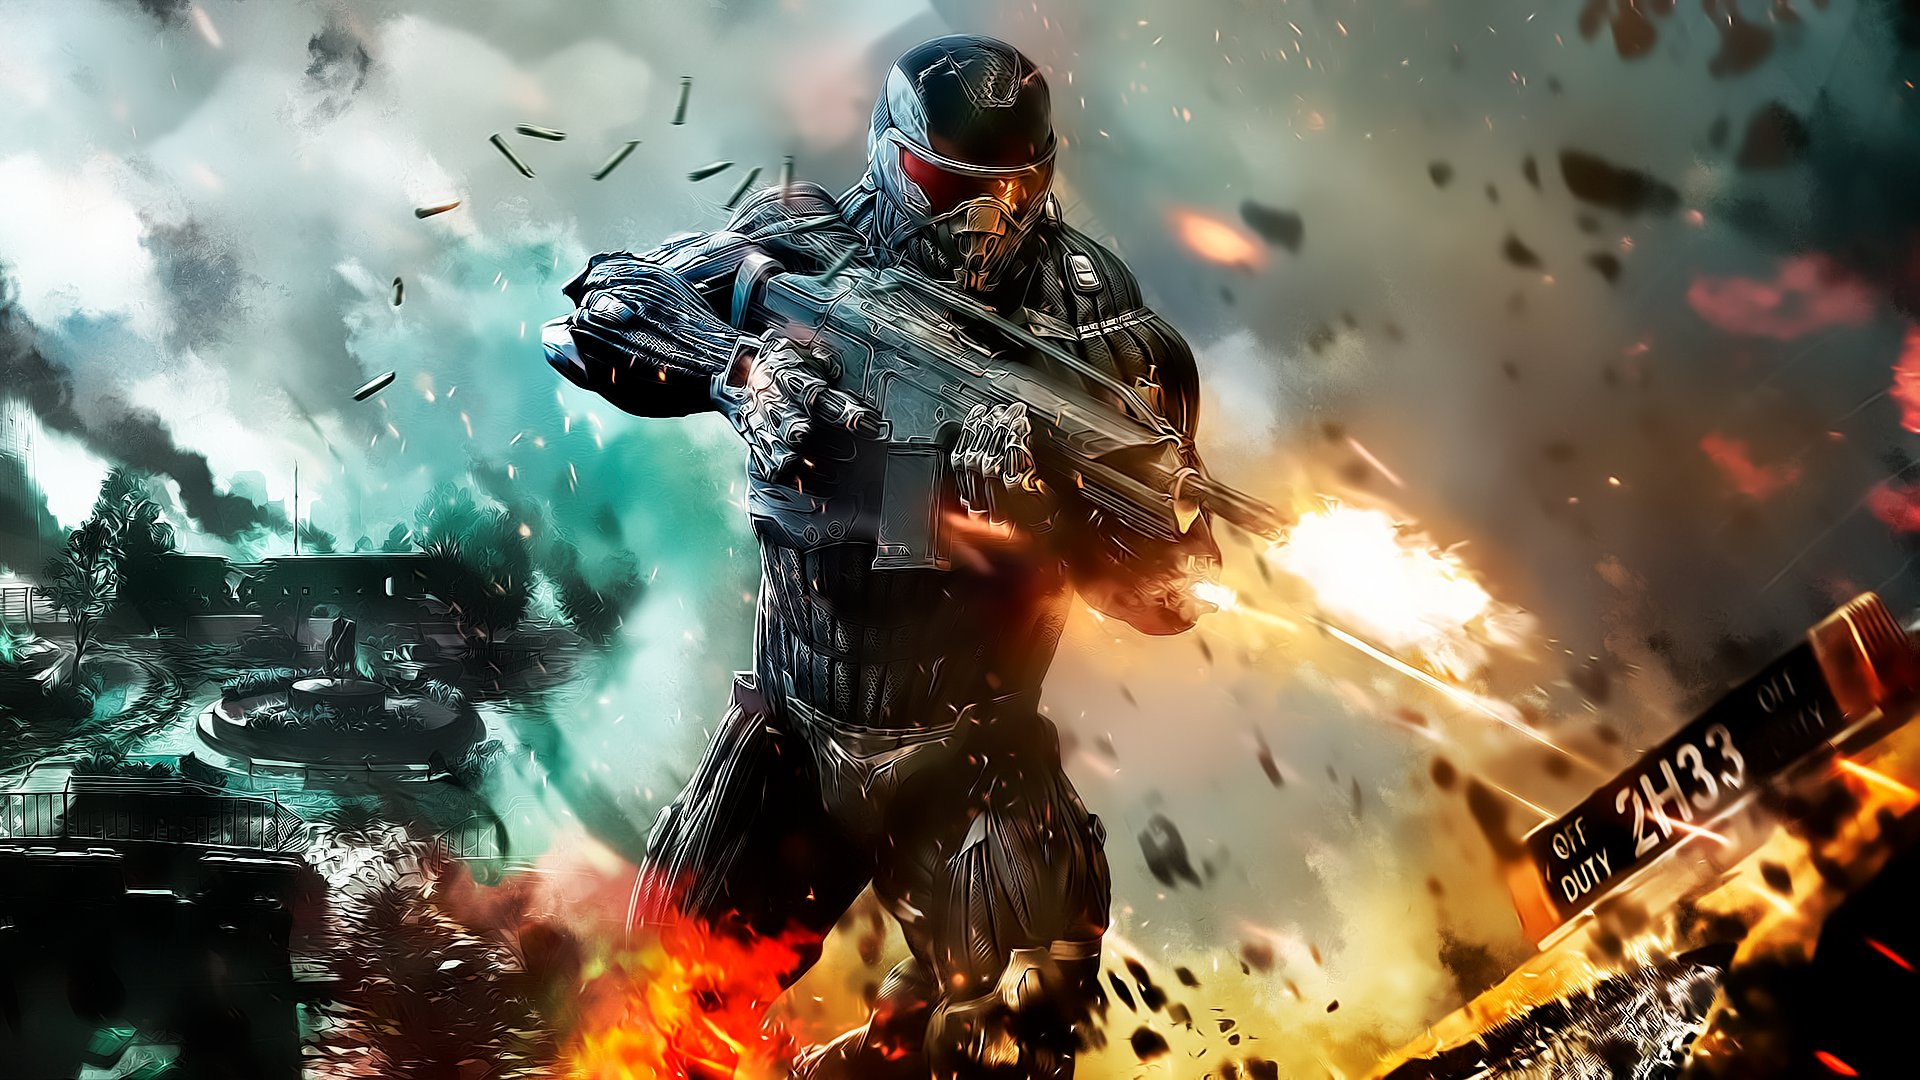 Crysis 3 Wallpaper High Definition